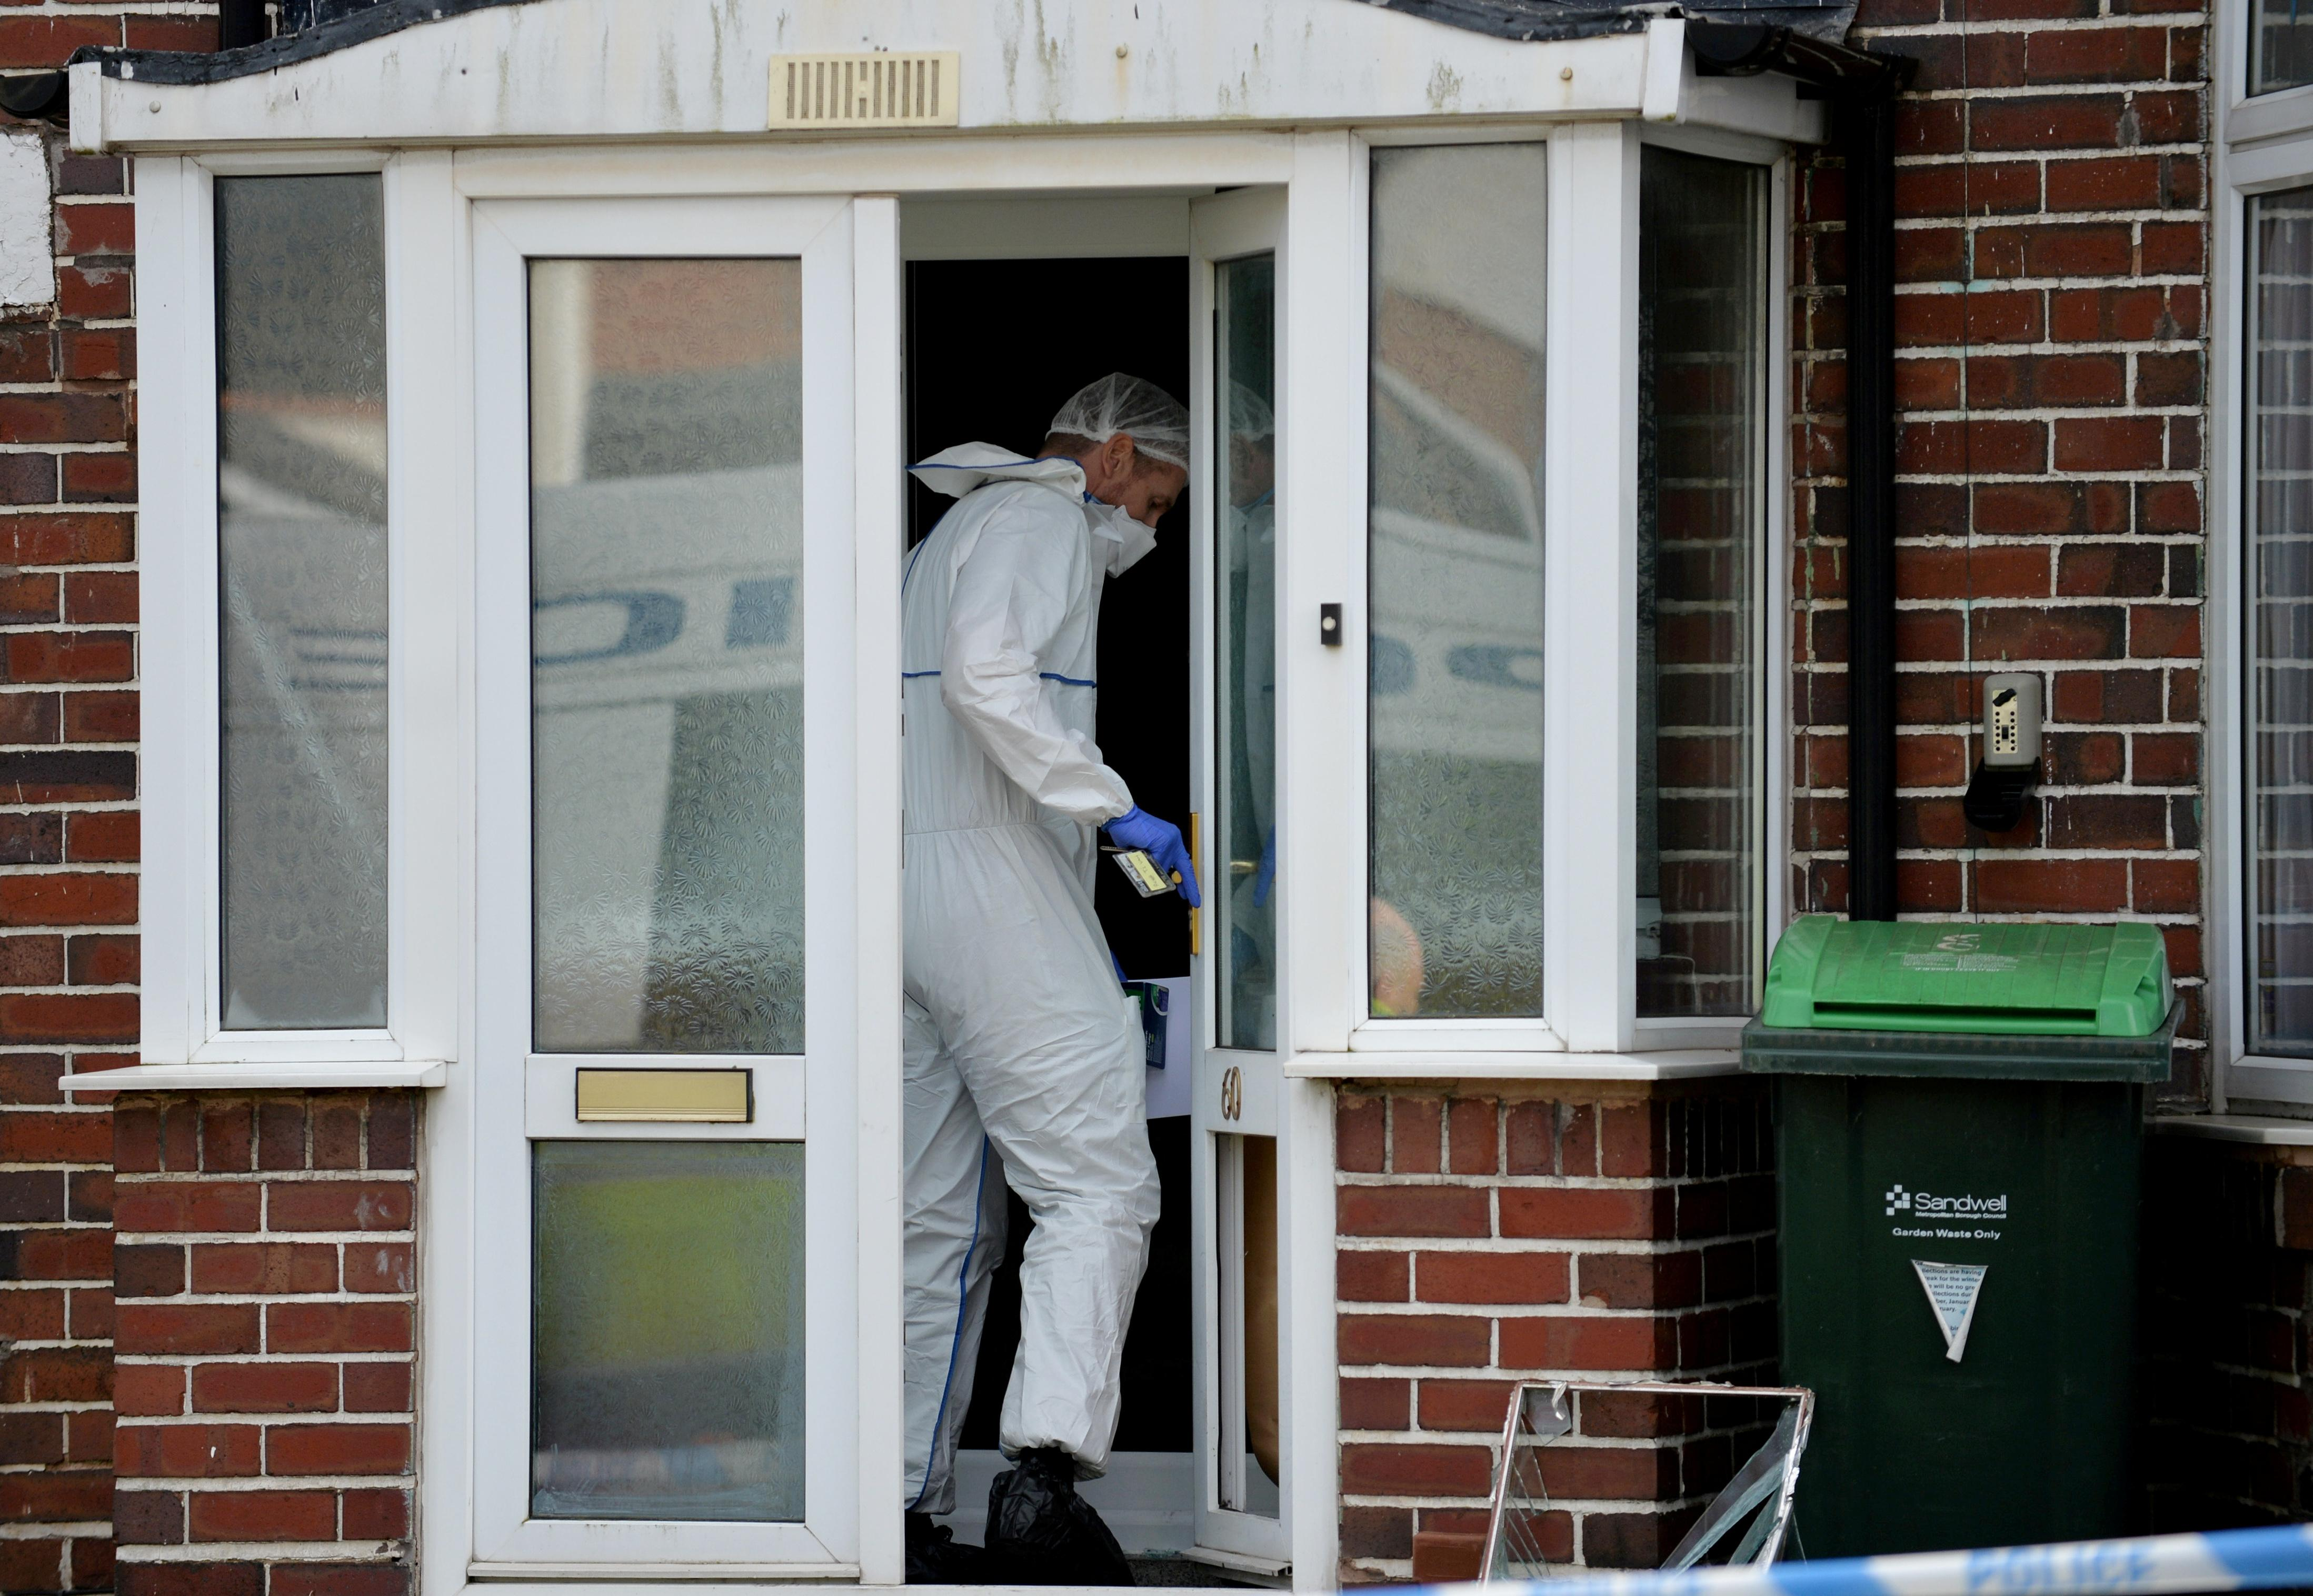 """Police forensics at the scene in Moat Road in Oldbury, West Mids, where the bodies of a middle-aged couple were found in their home this morning. February 25, 2020. See SWNS story SWMDmurders. A 25-year-old man was arrested on suspicion of double murder today (Tues) after the bodies of a middle-aged couple were found in their home. Police officers forced their way into a house in Moat Road in Oldbury, West Mids., at 4am after receiving calls regarding the welfare of the couple. Inside the property officers found the bodies of a woman, 54, and a 52-year-old man who were pronounced dead at the scene. At 5.30am detectives arrested a 25-year-old man at an address in nearby Smethwick. Police are not confirming if the man was the victims' parents but say they are treating the murders as a """"domestic-related incident"""". A West Midlands Police spokesperson said: """"We've arrested a man on suspicion of murder after the bodies of two people were found in Oldbury today."""